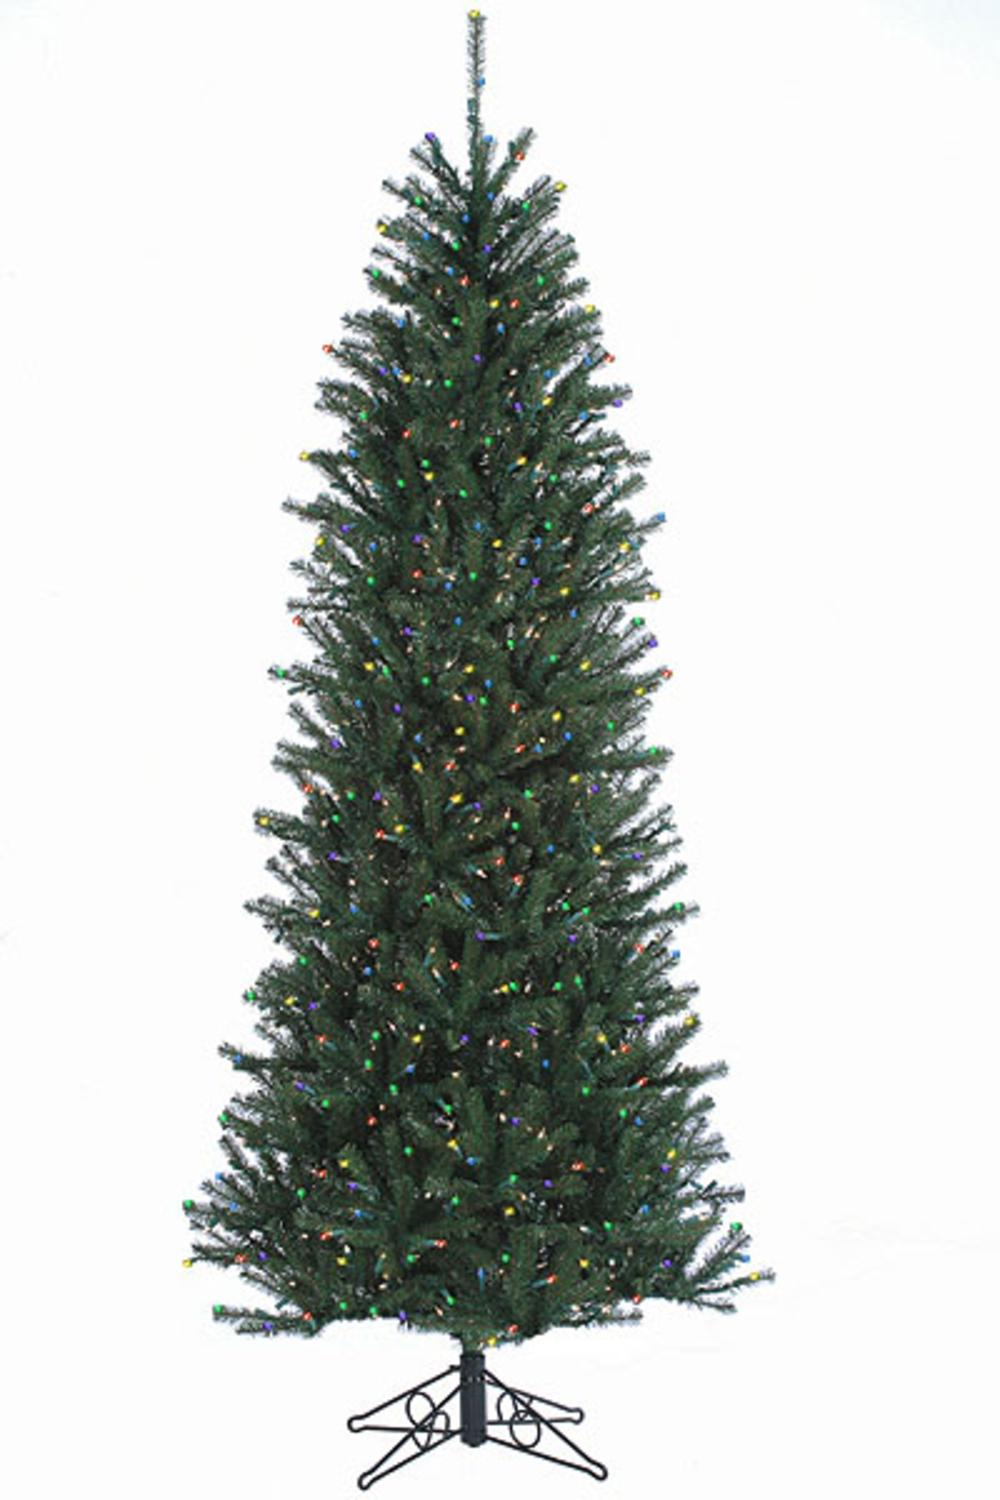 12' Slim Alexandria Pine Pre-Lit Artificial Christmas Tree - Multi Lights